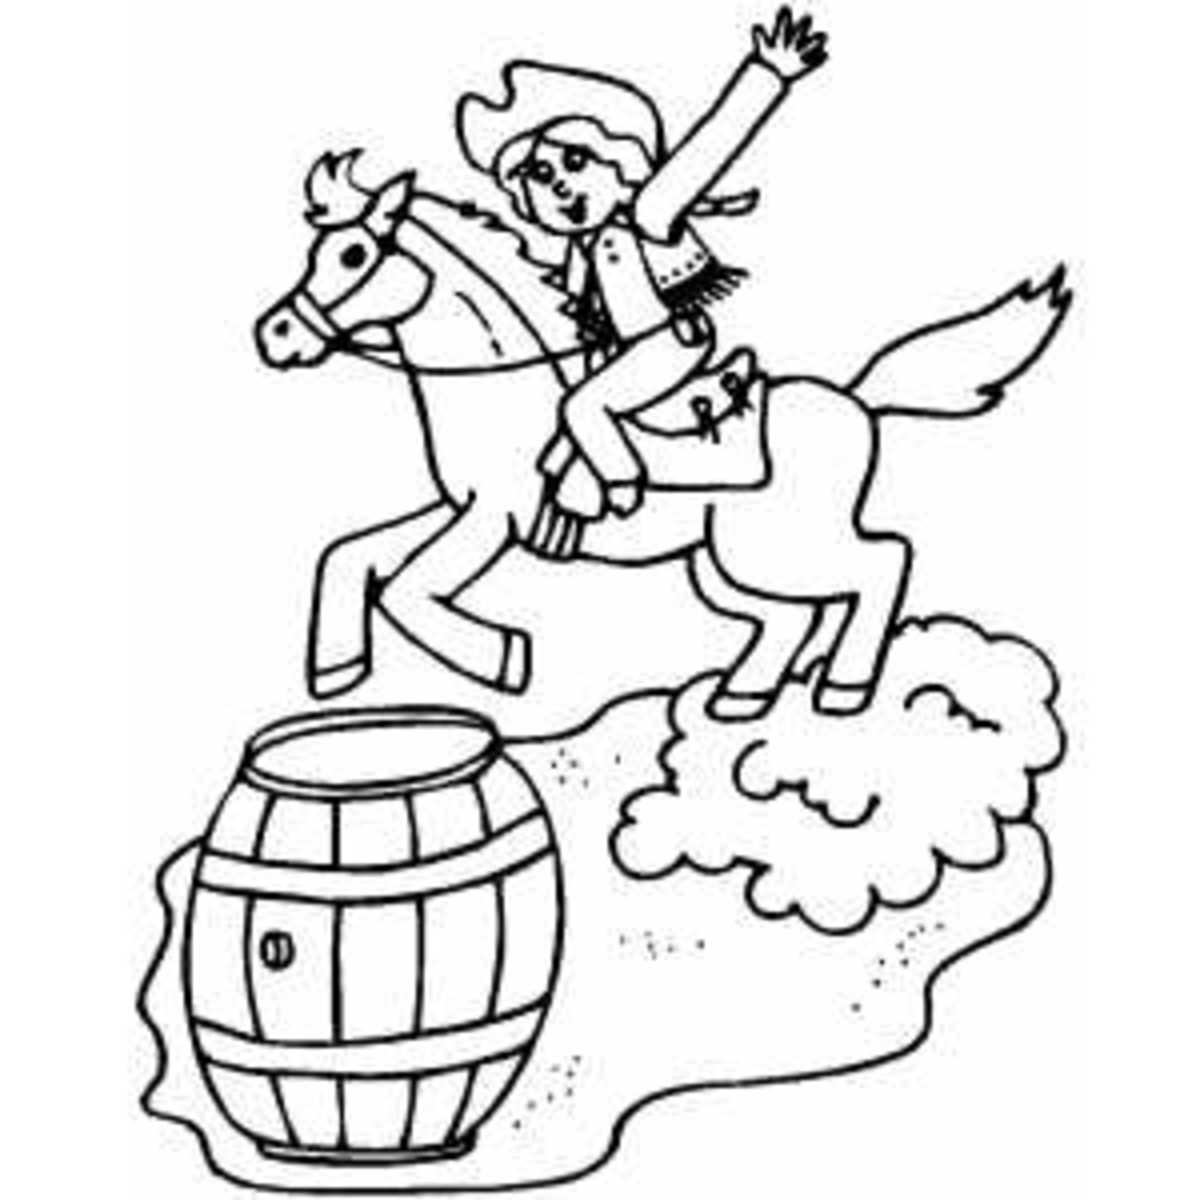 Cowboy Barrel Racing at Rodeo - Western Cowboy Kids Coloring Pages and Free Colouring Pictures to Print